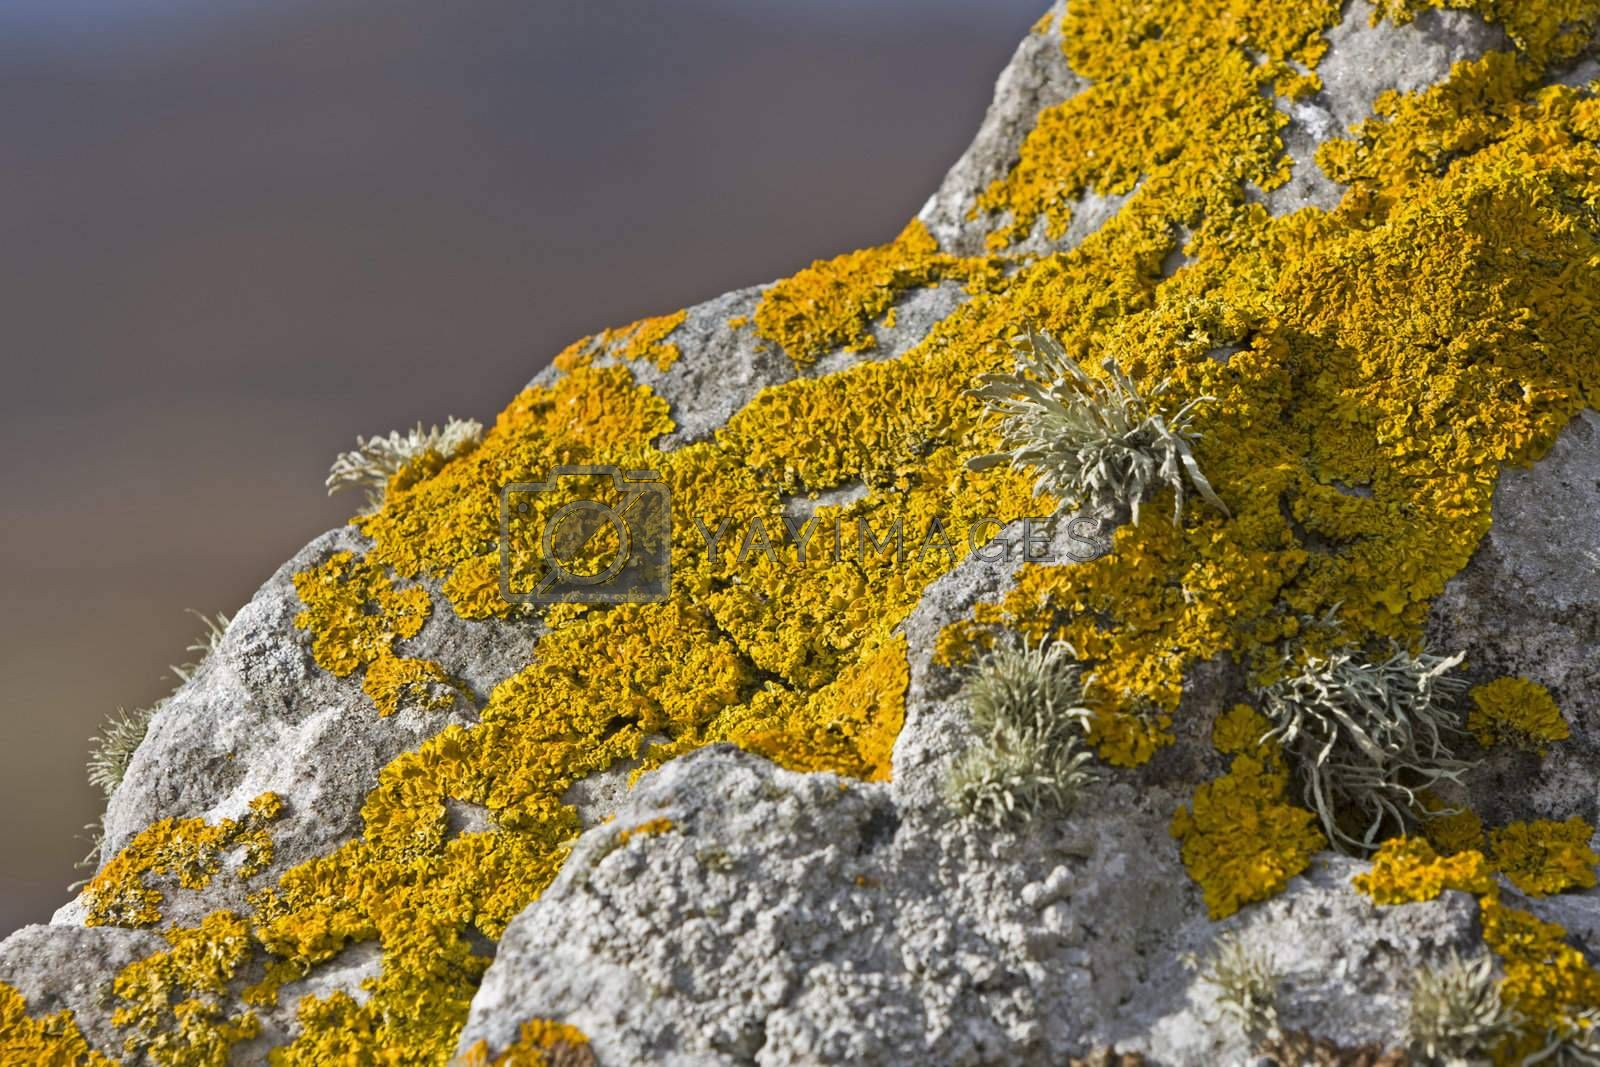 yellow lichen on stone in close up shot